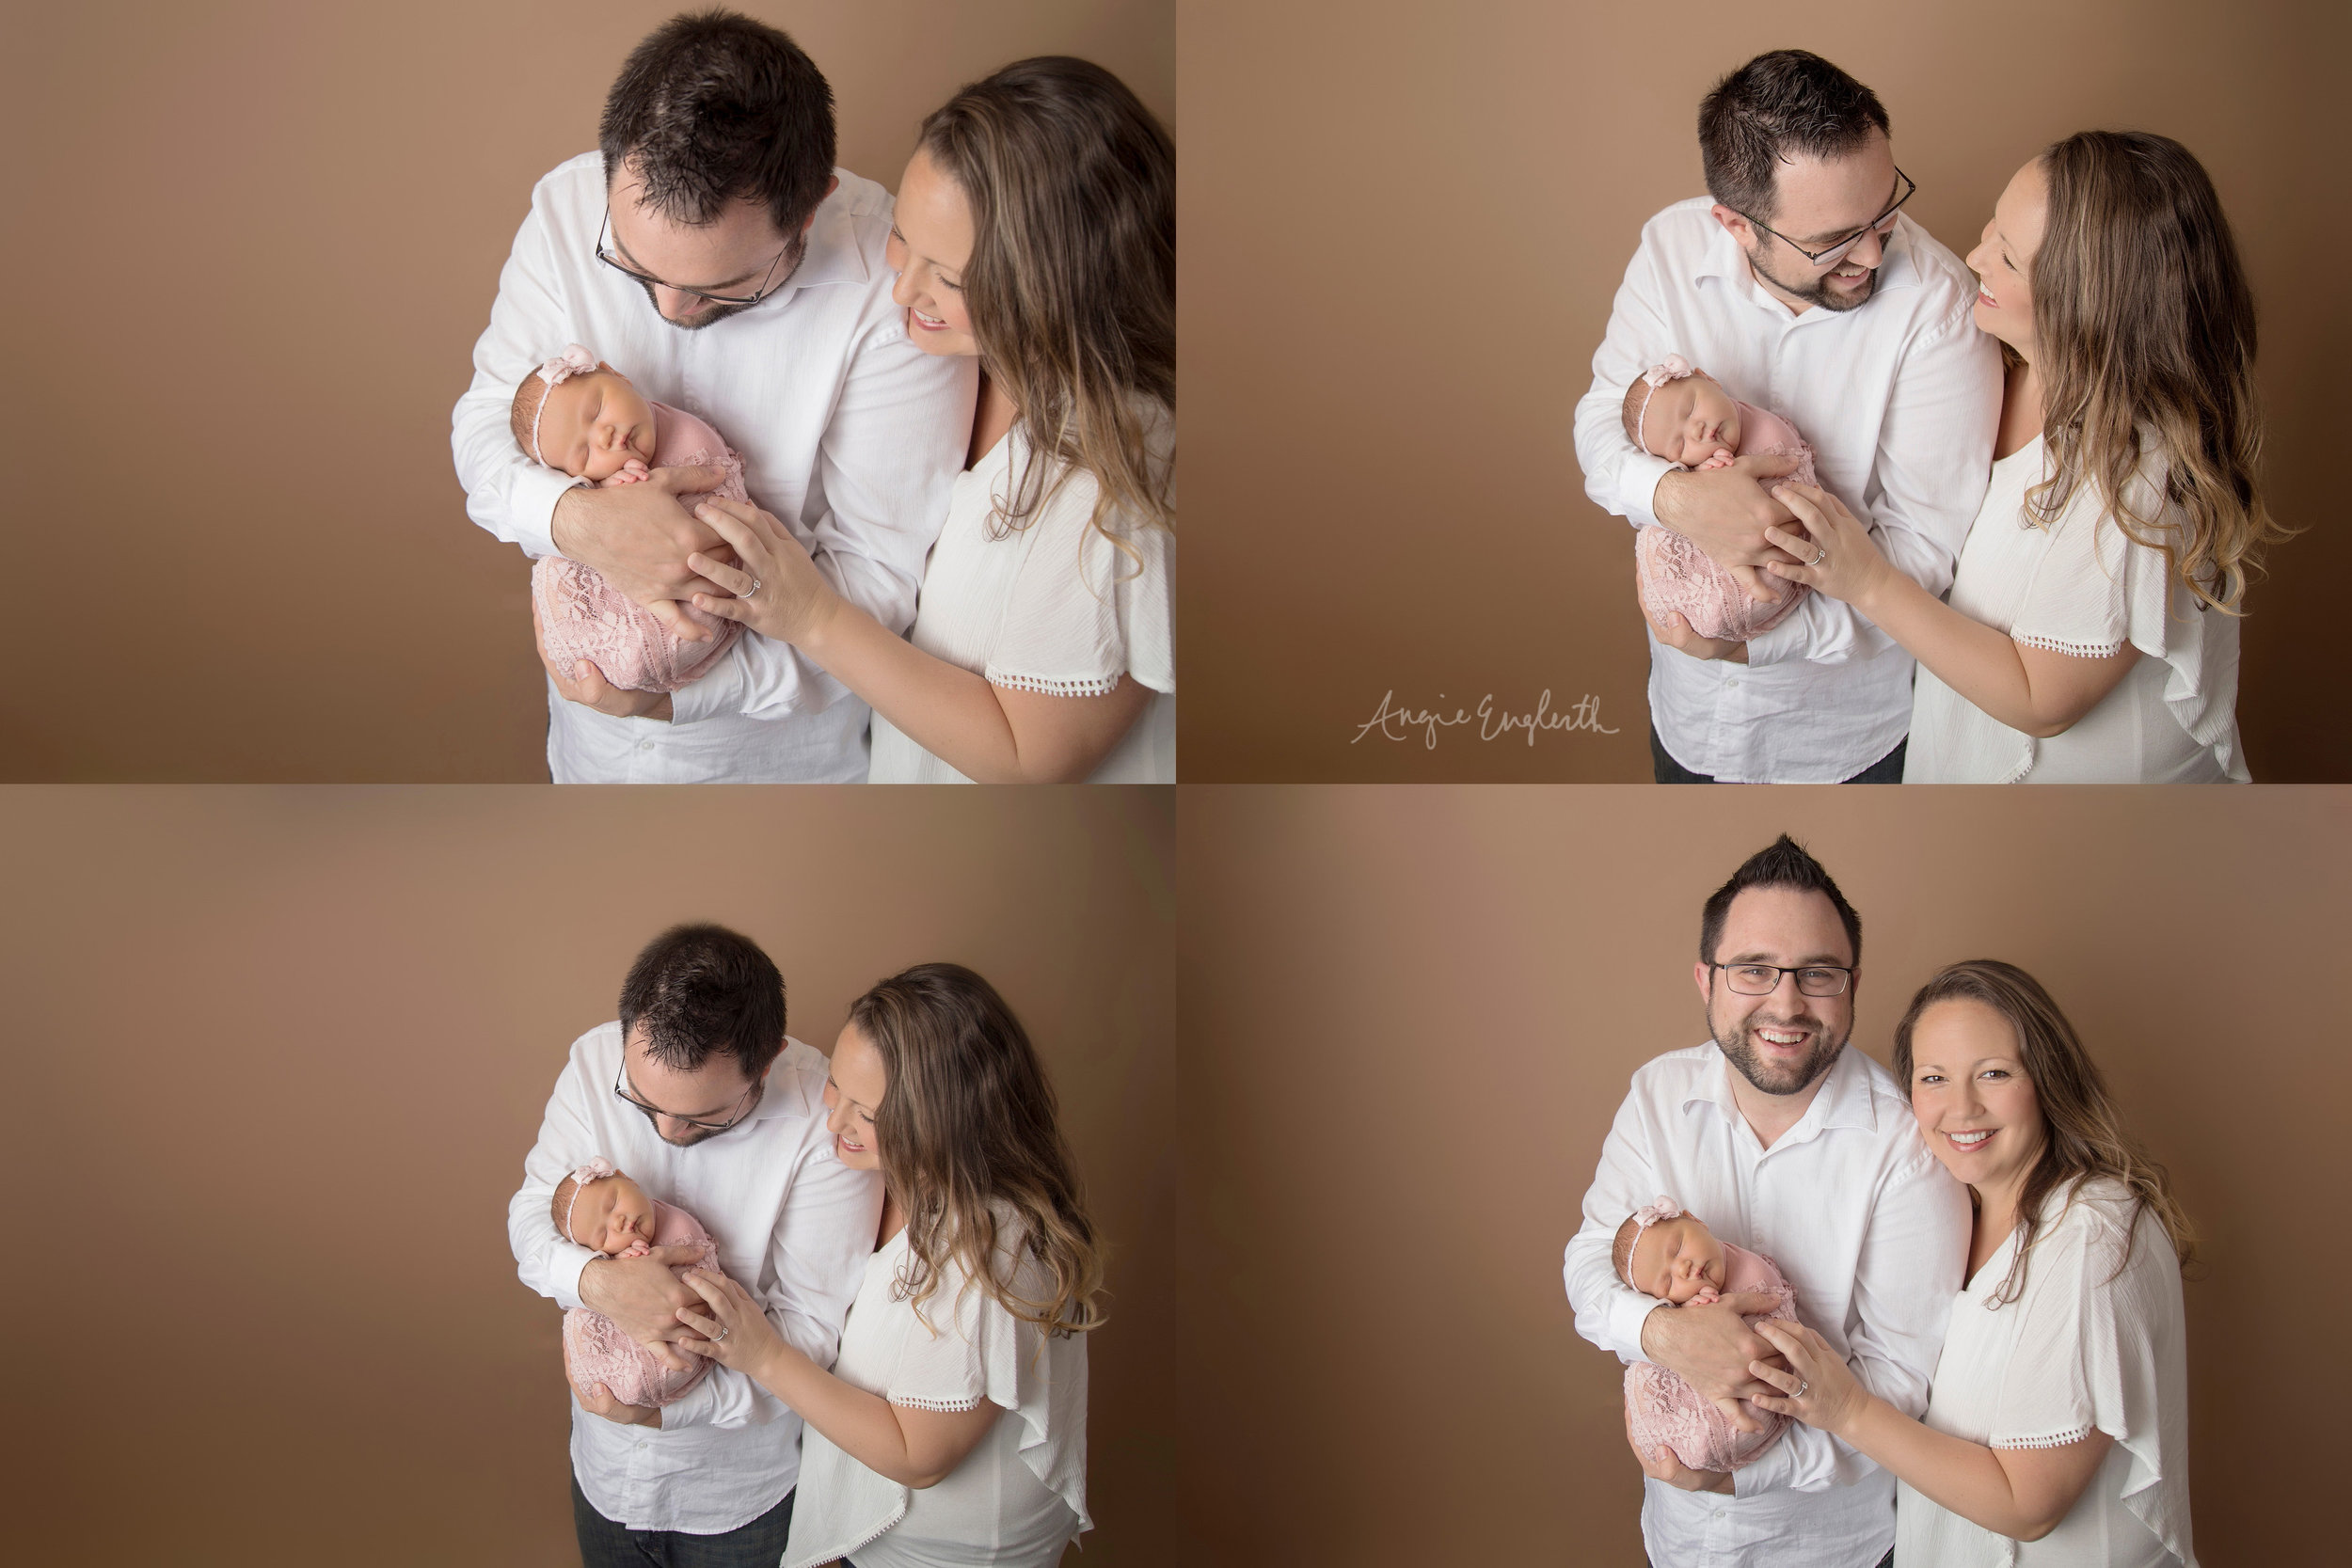 lancaster_newborn_photographer_angie_englerth_central_pa_011.jpg